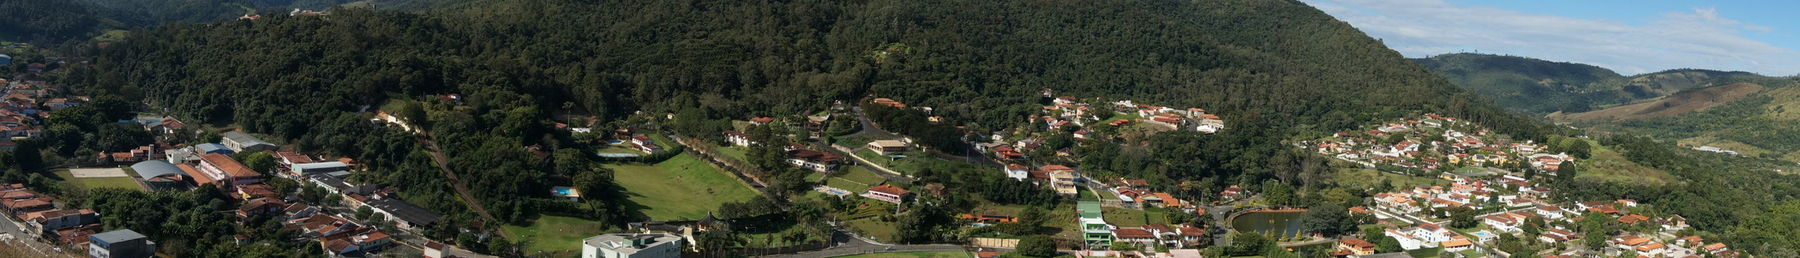 Monte Alegre do Sul Panorama.JPG